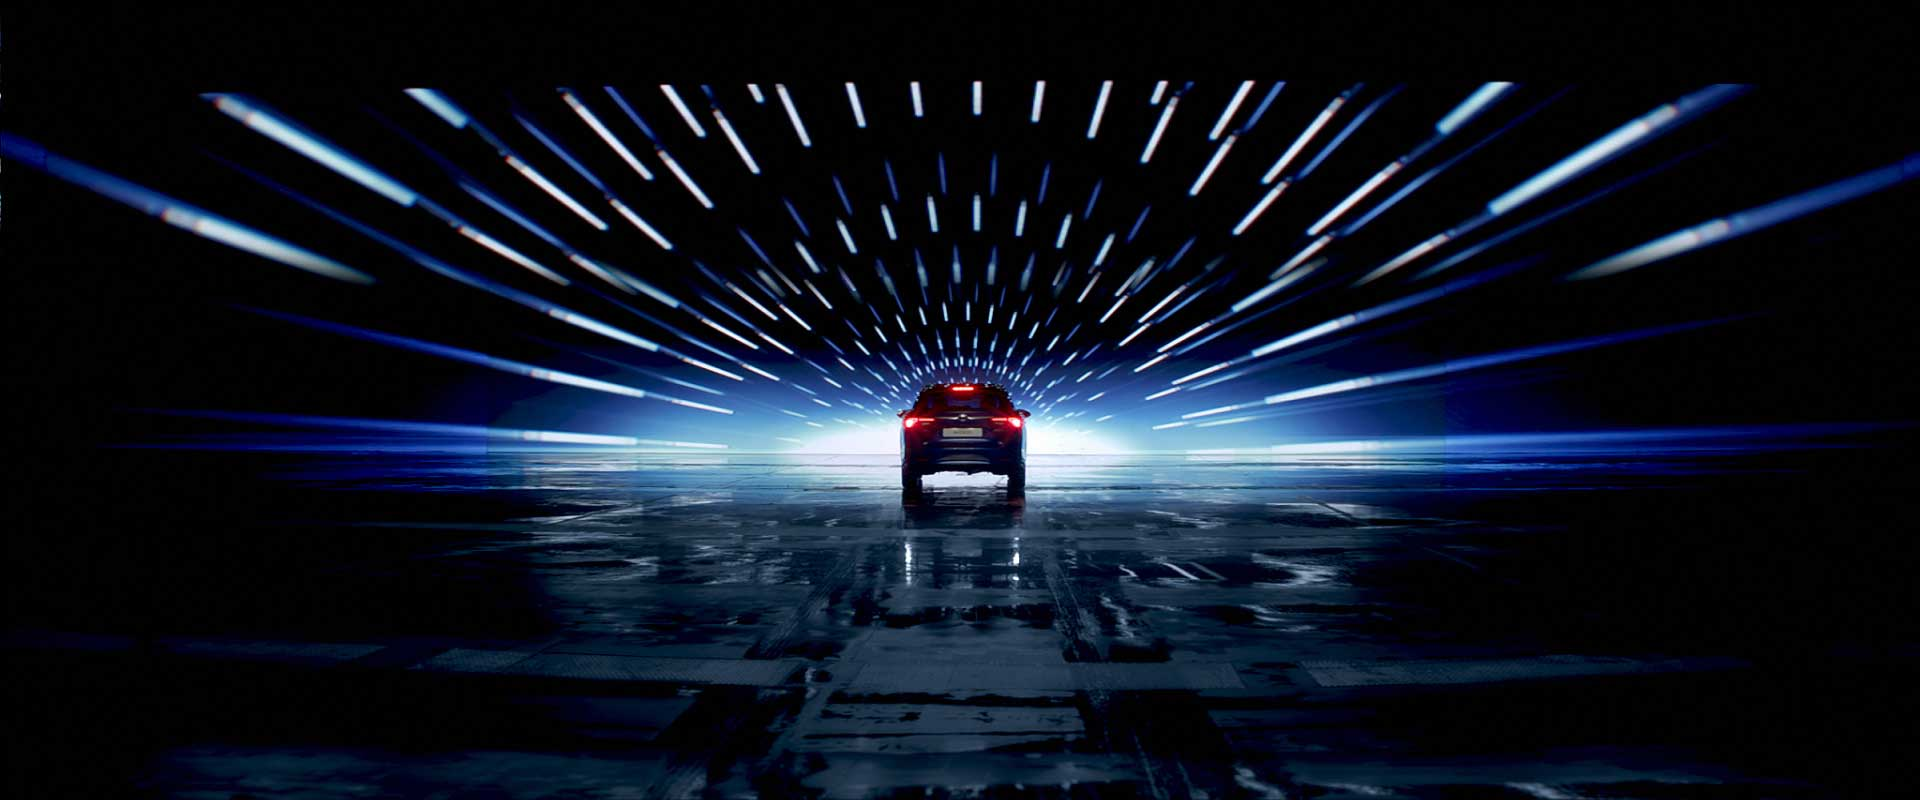 Backview car. Still from Toyota Avensis - Commercial